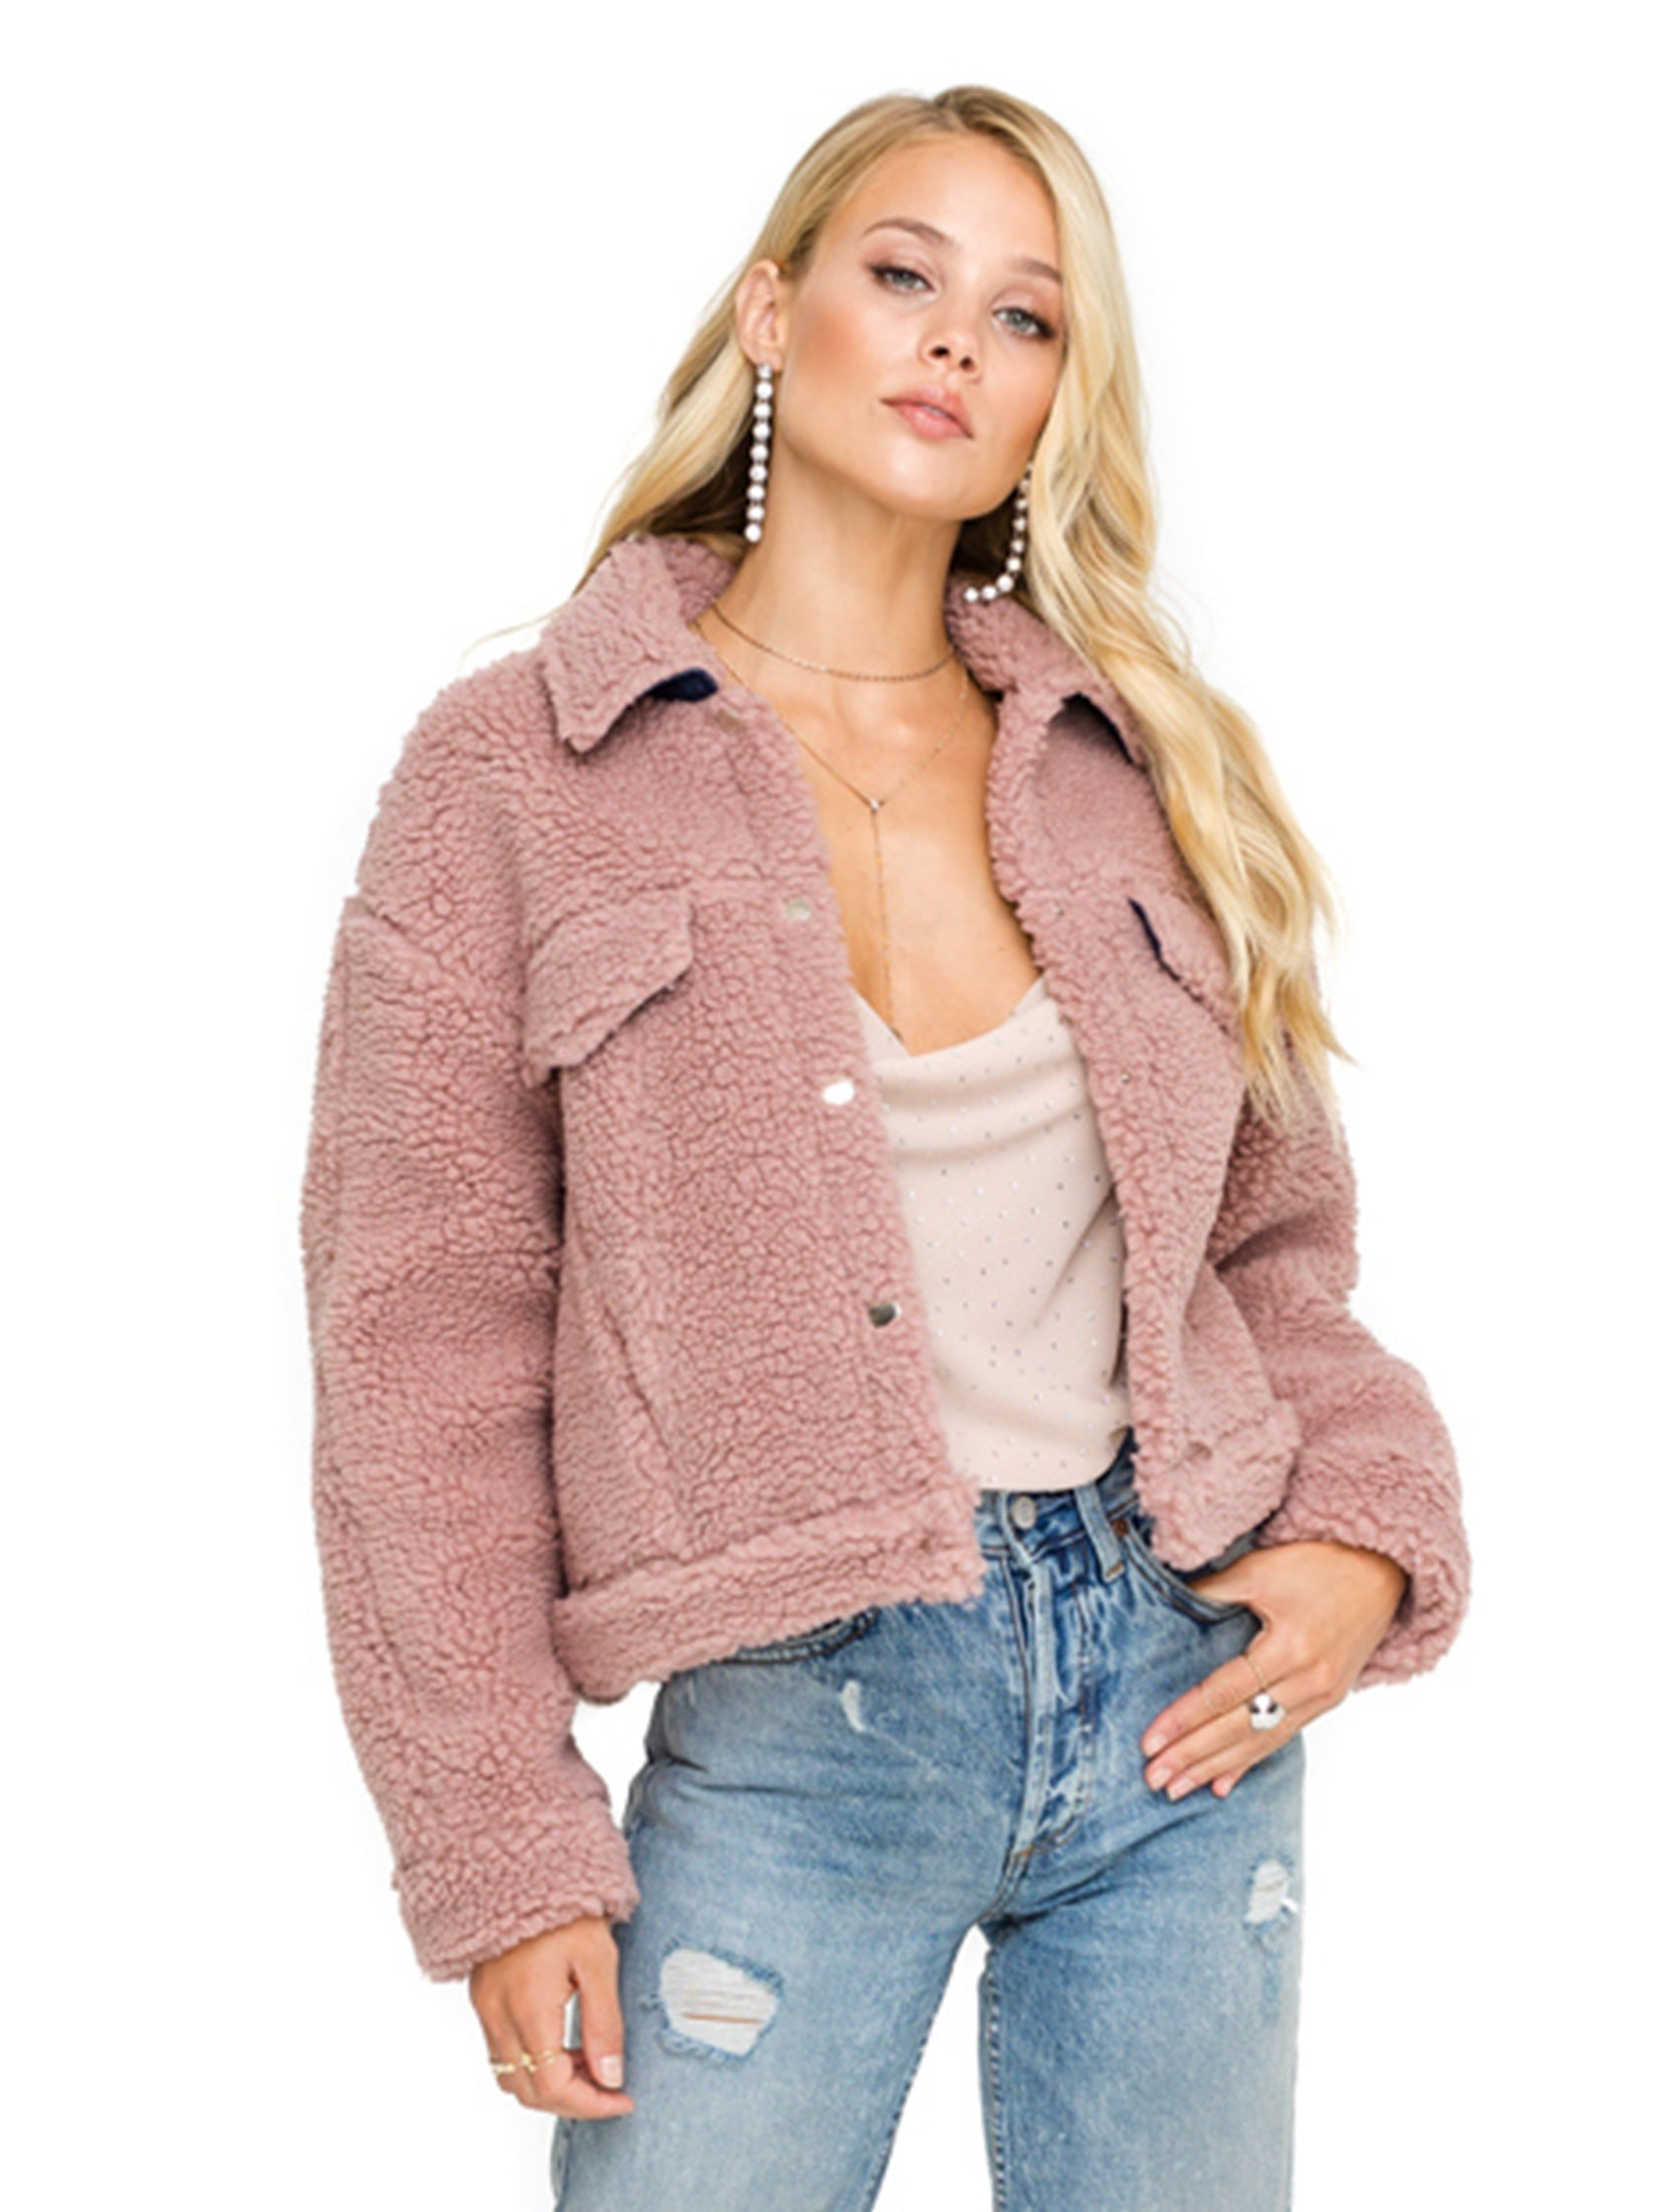 Girl outfit in a jacket rental from ASTR called Faux Shearling Trucker Jacket